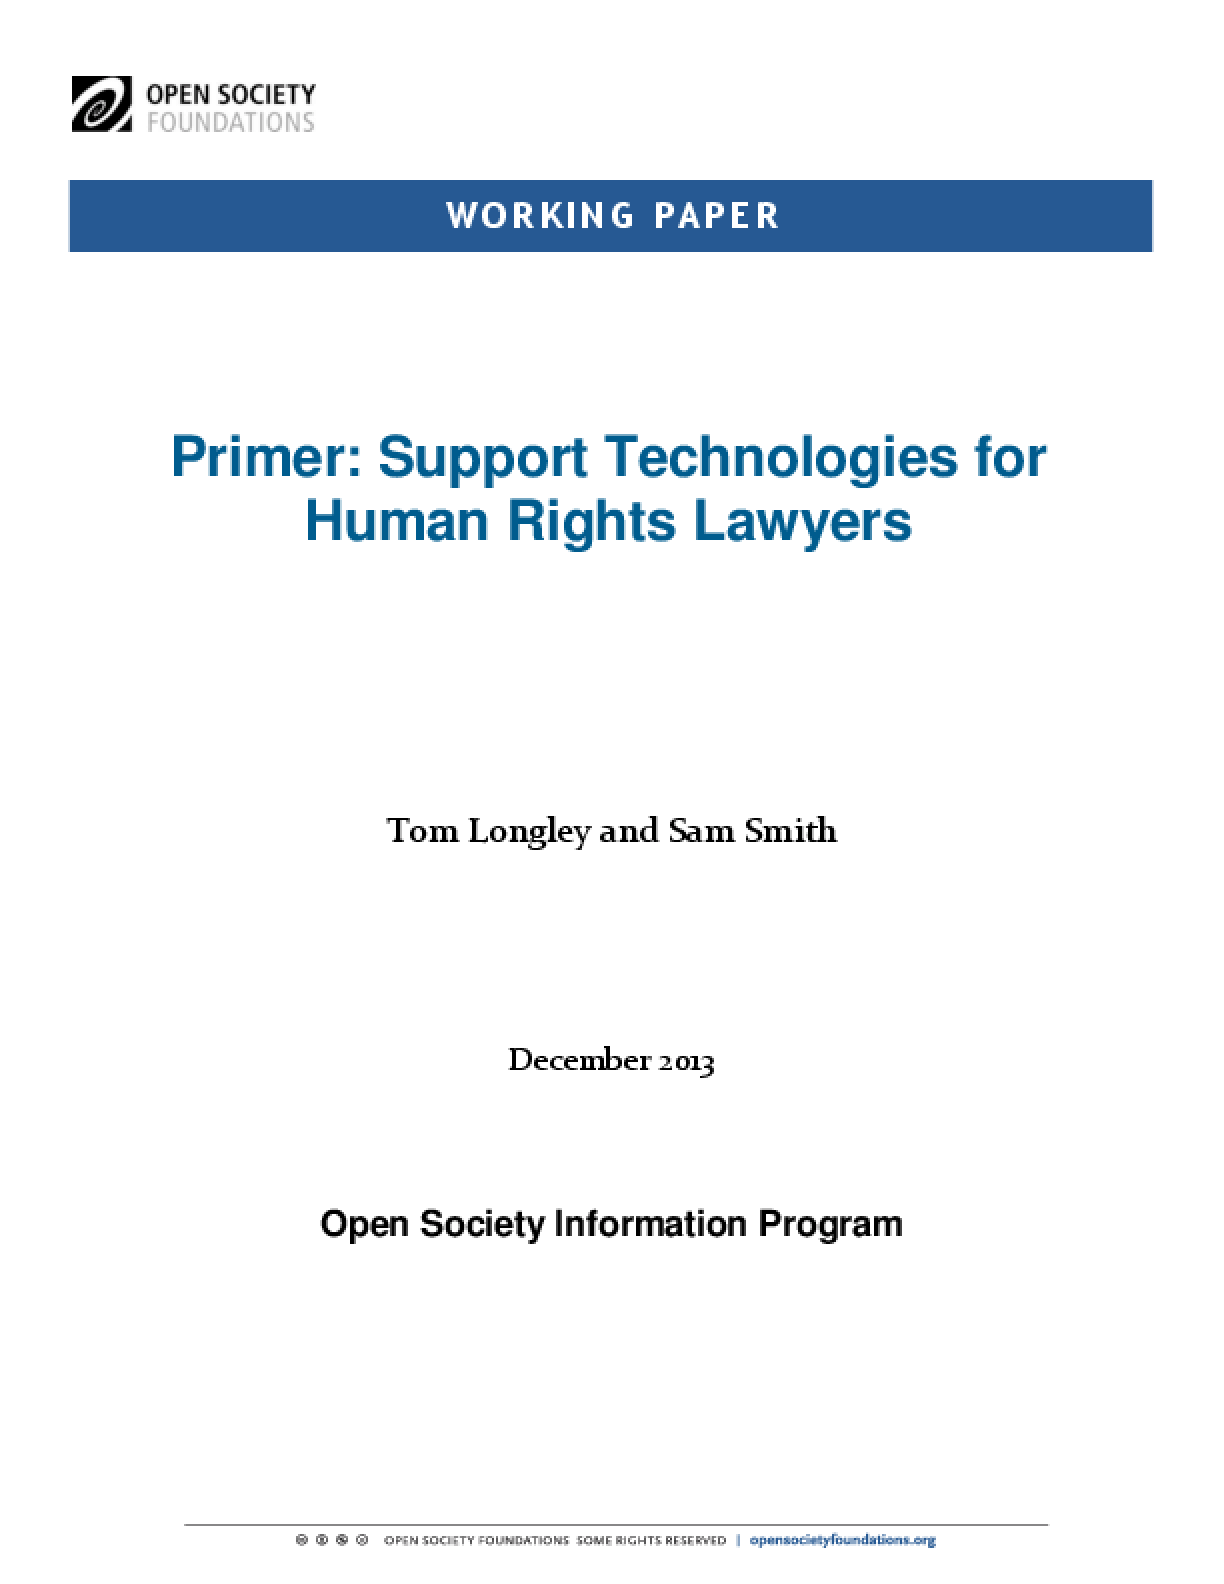 Primer: Support Technologies for Human Rights Lawyers